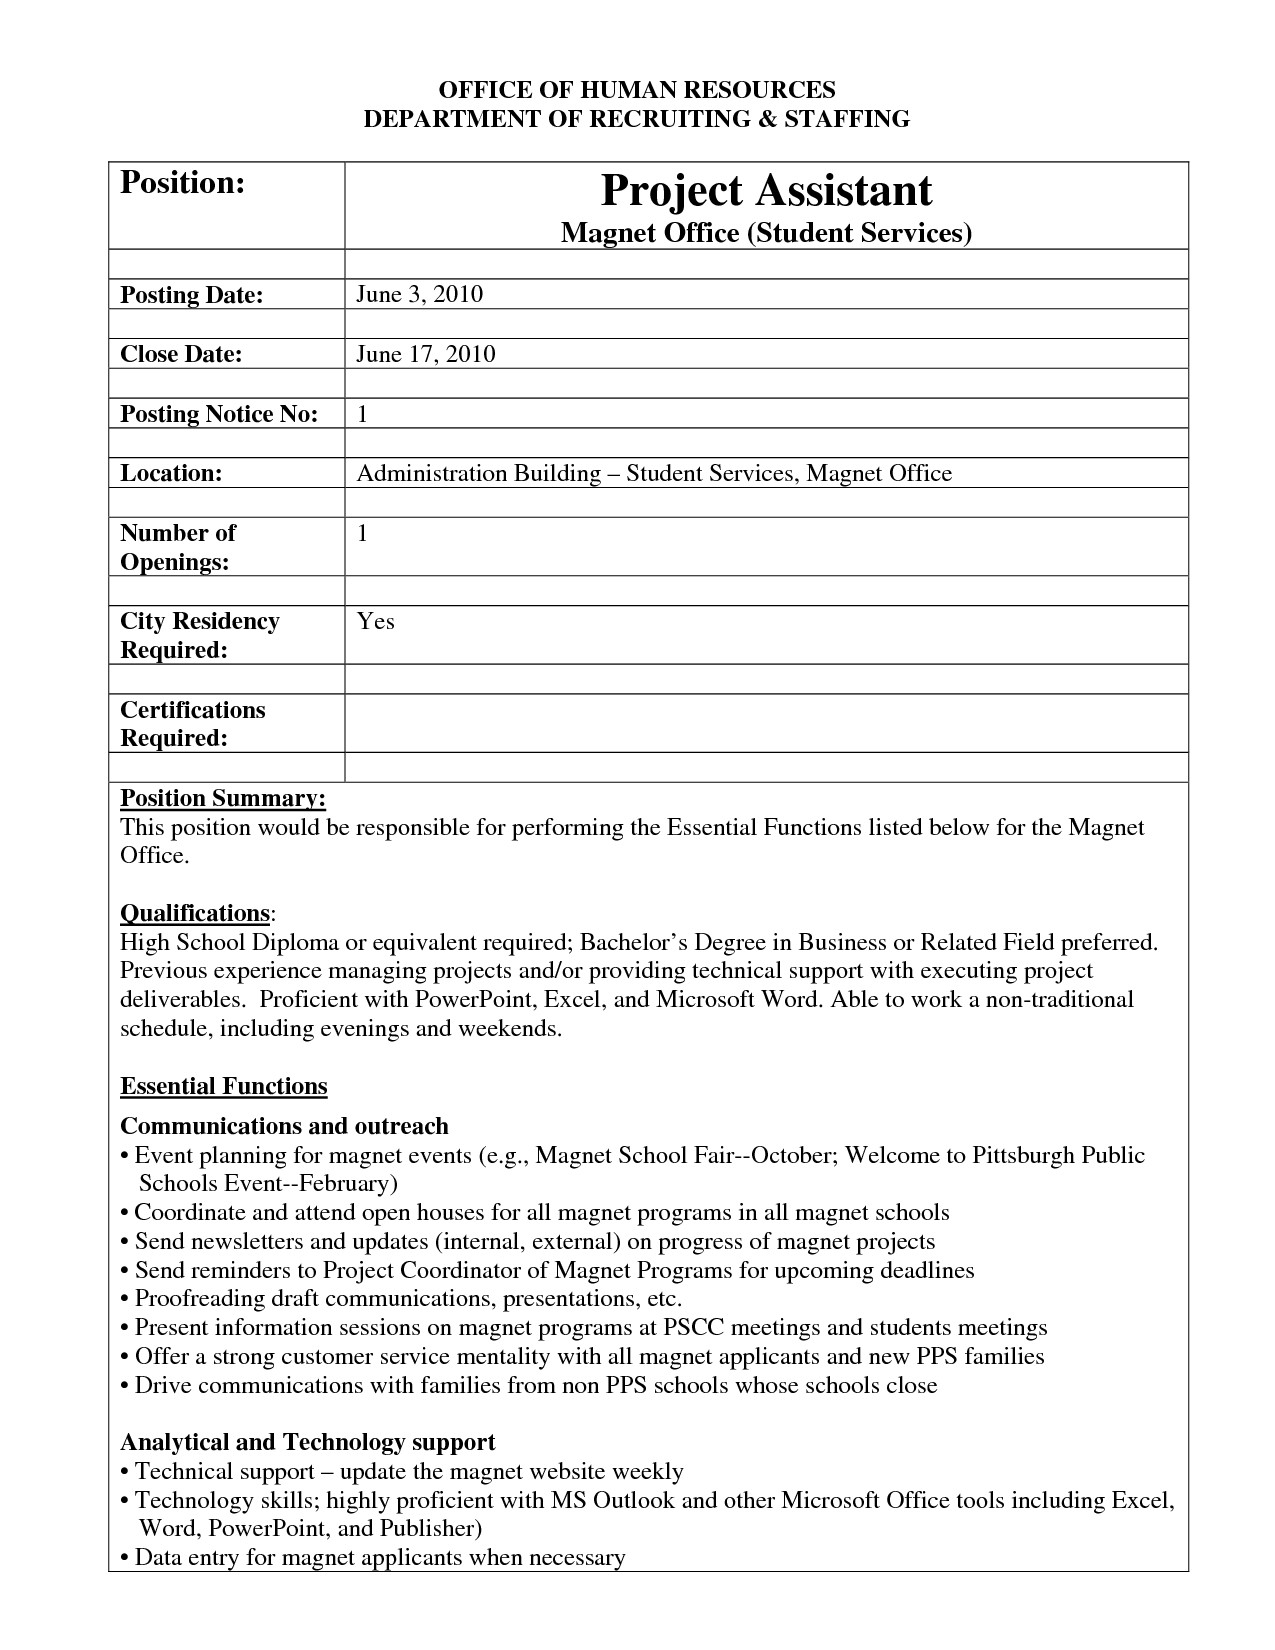 Job Posting Template Word Best S Of Internal Job Posting Template Word Resume